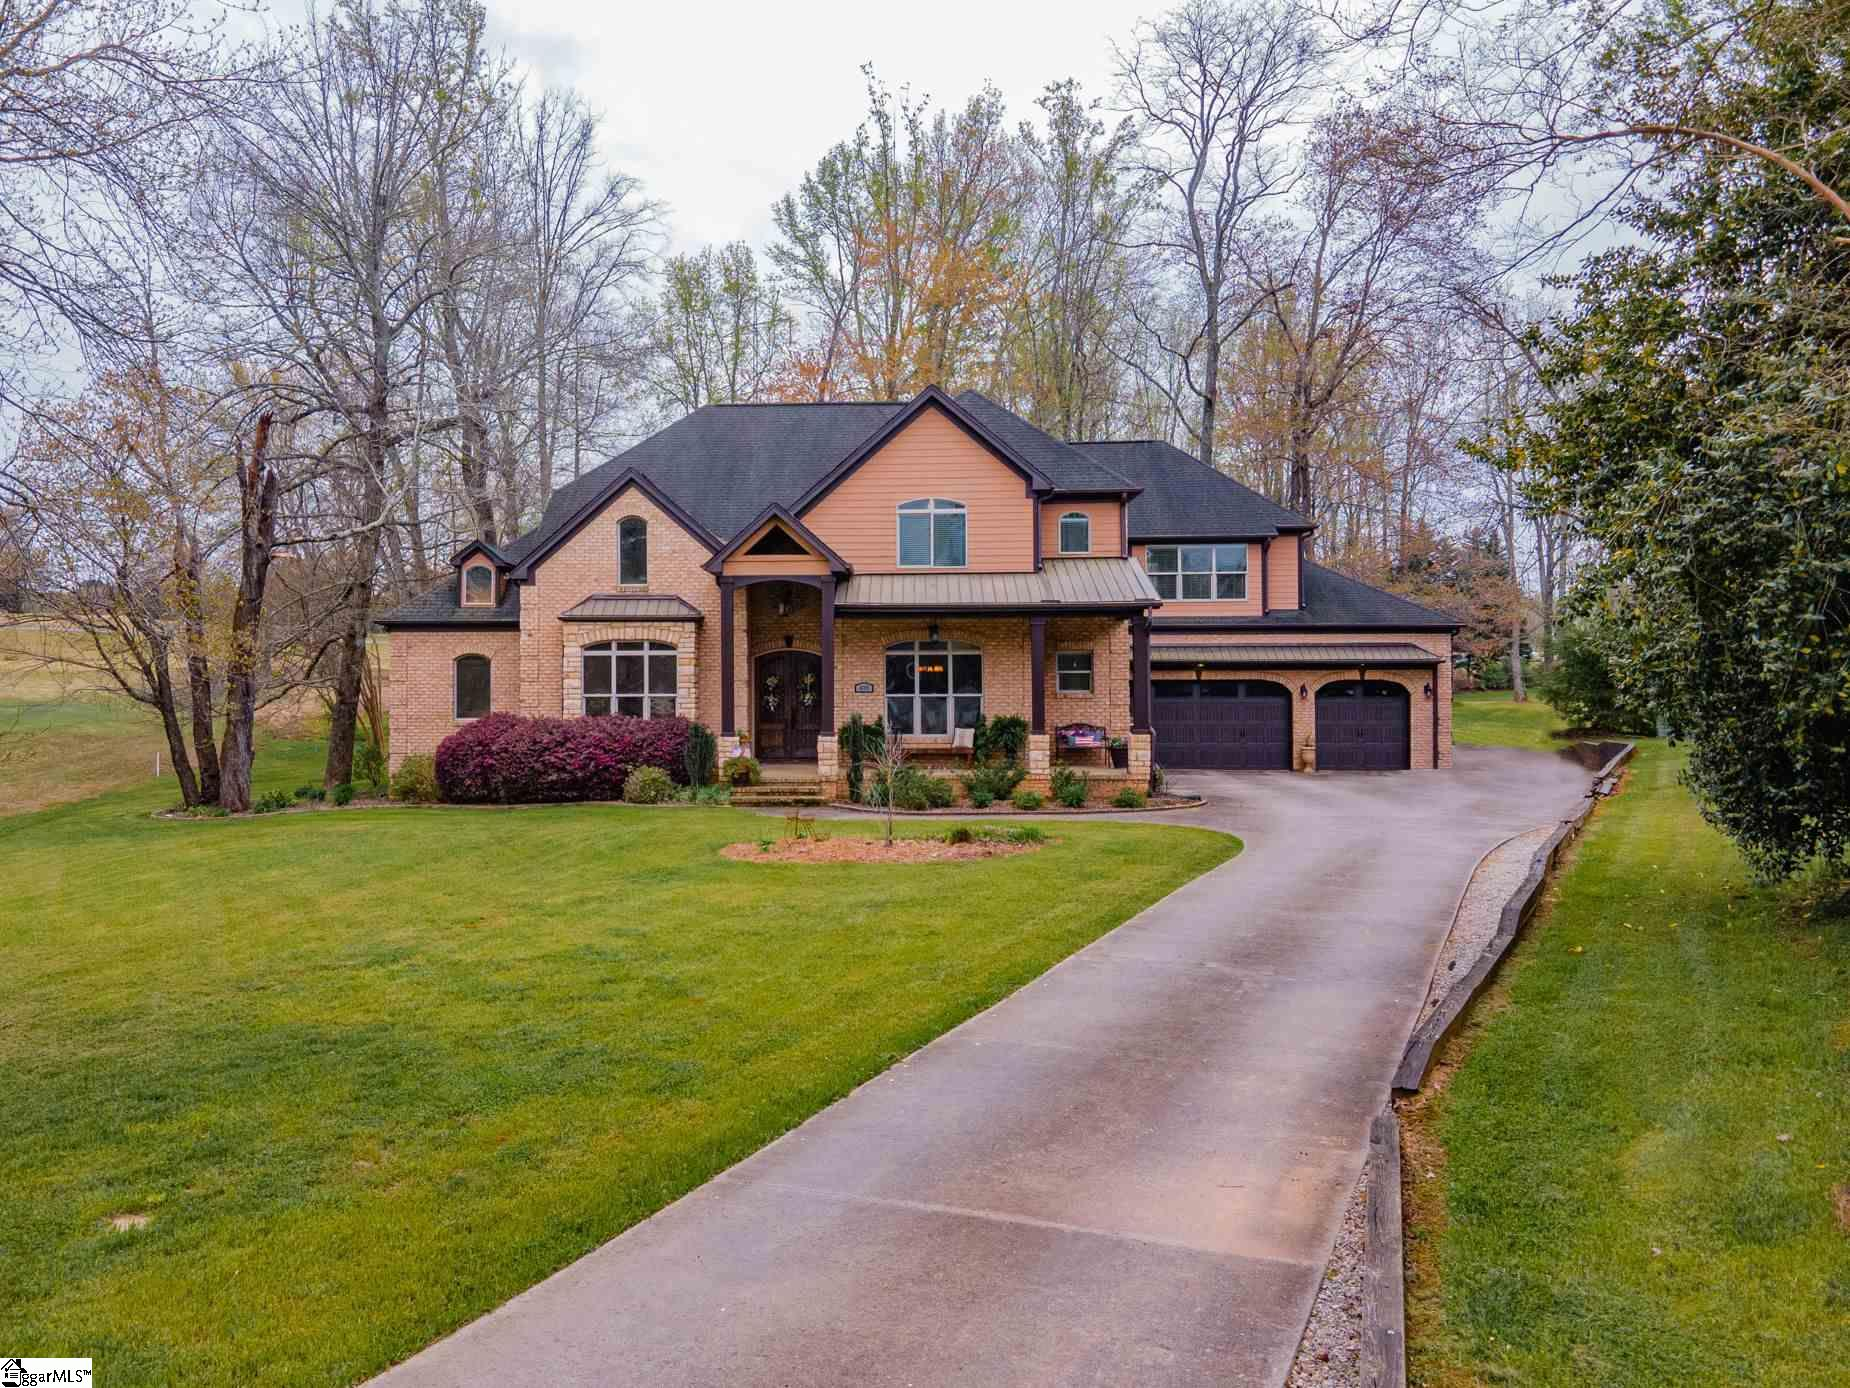 420 Inverness Way Easley, SC 29642